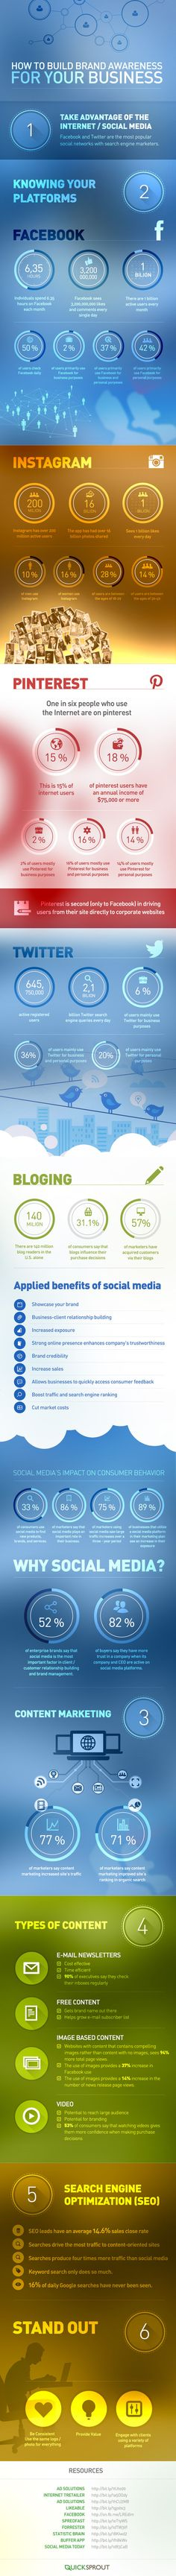 I like the content part! Facebook, Instagram, Pinterest, Twitter: How to Build Brand Awareness #INFOGRAPHIC | MarketingHits | Scoop.it